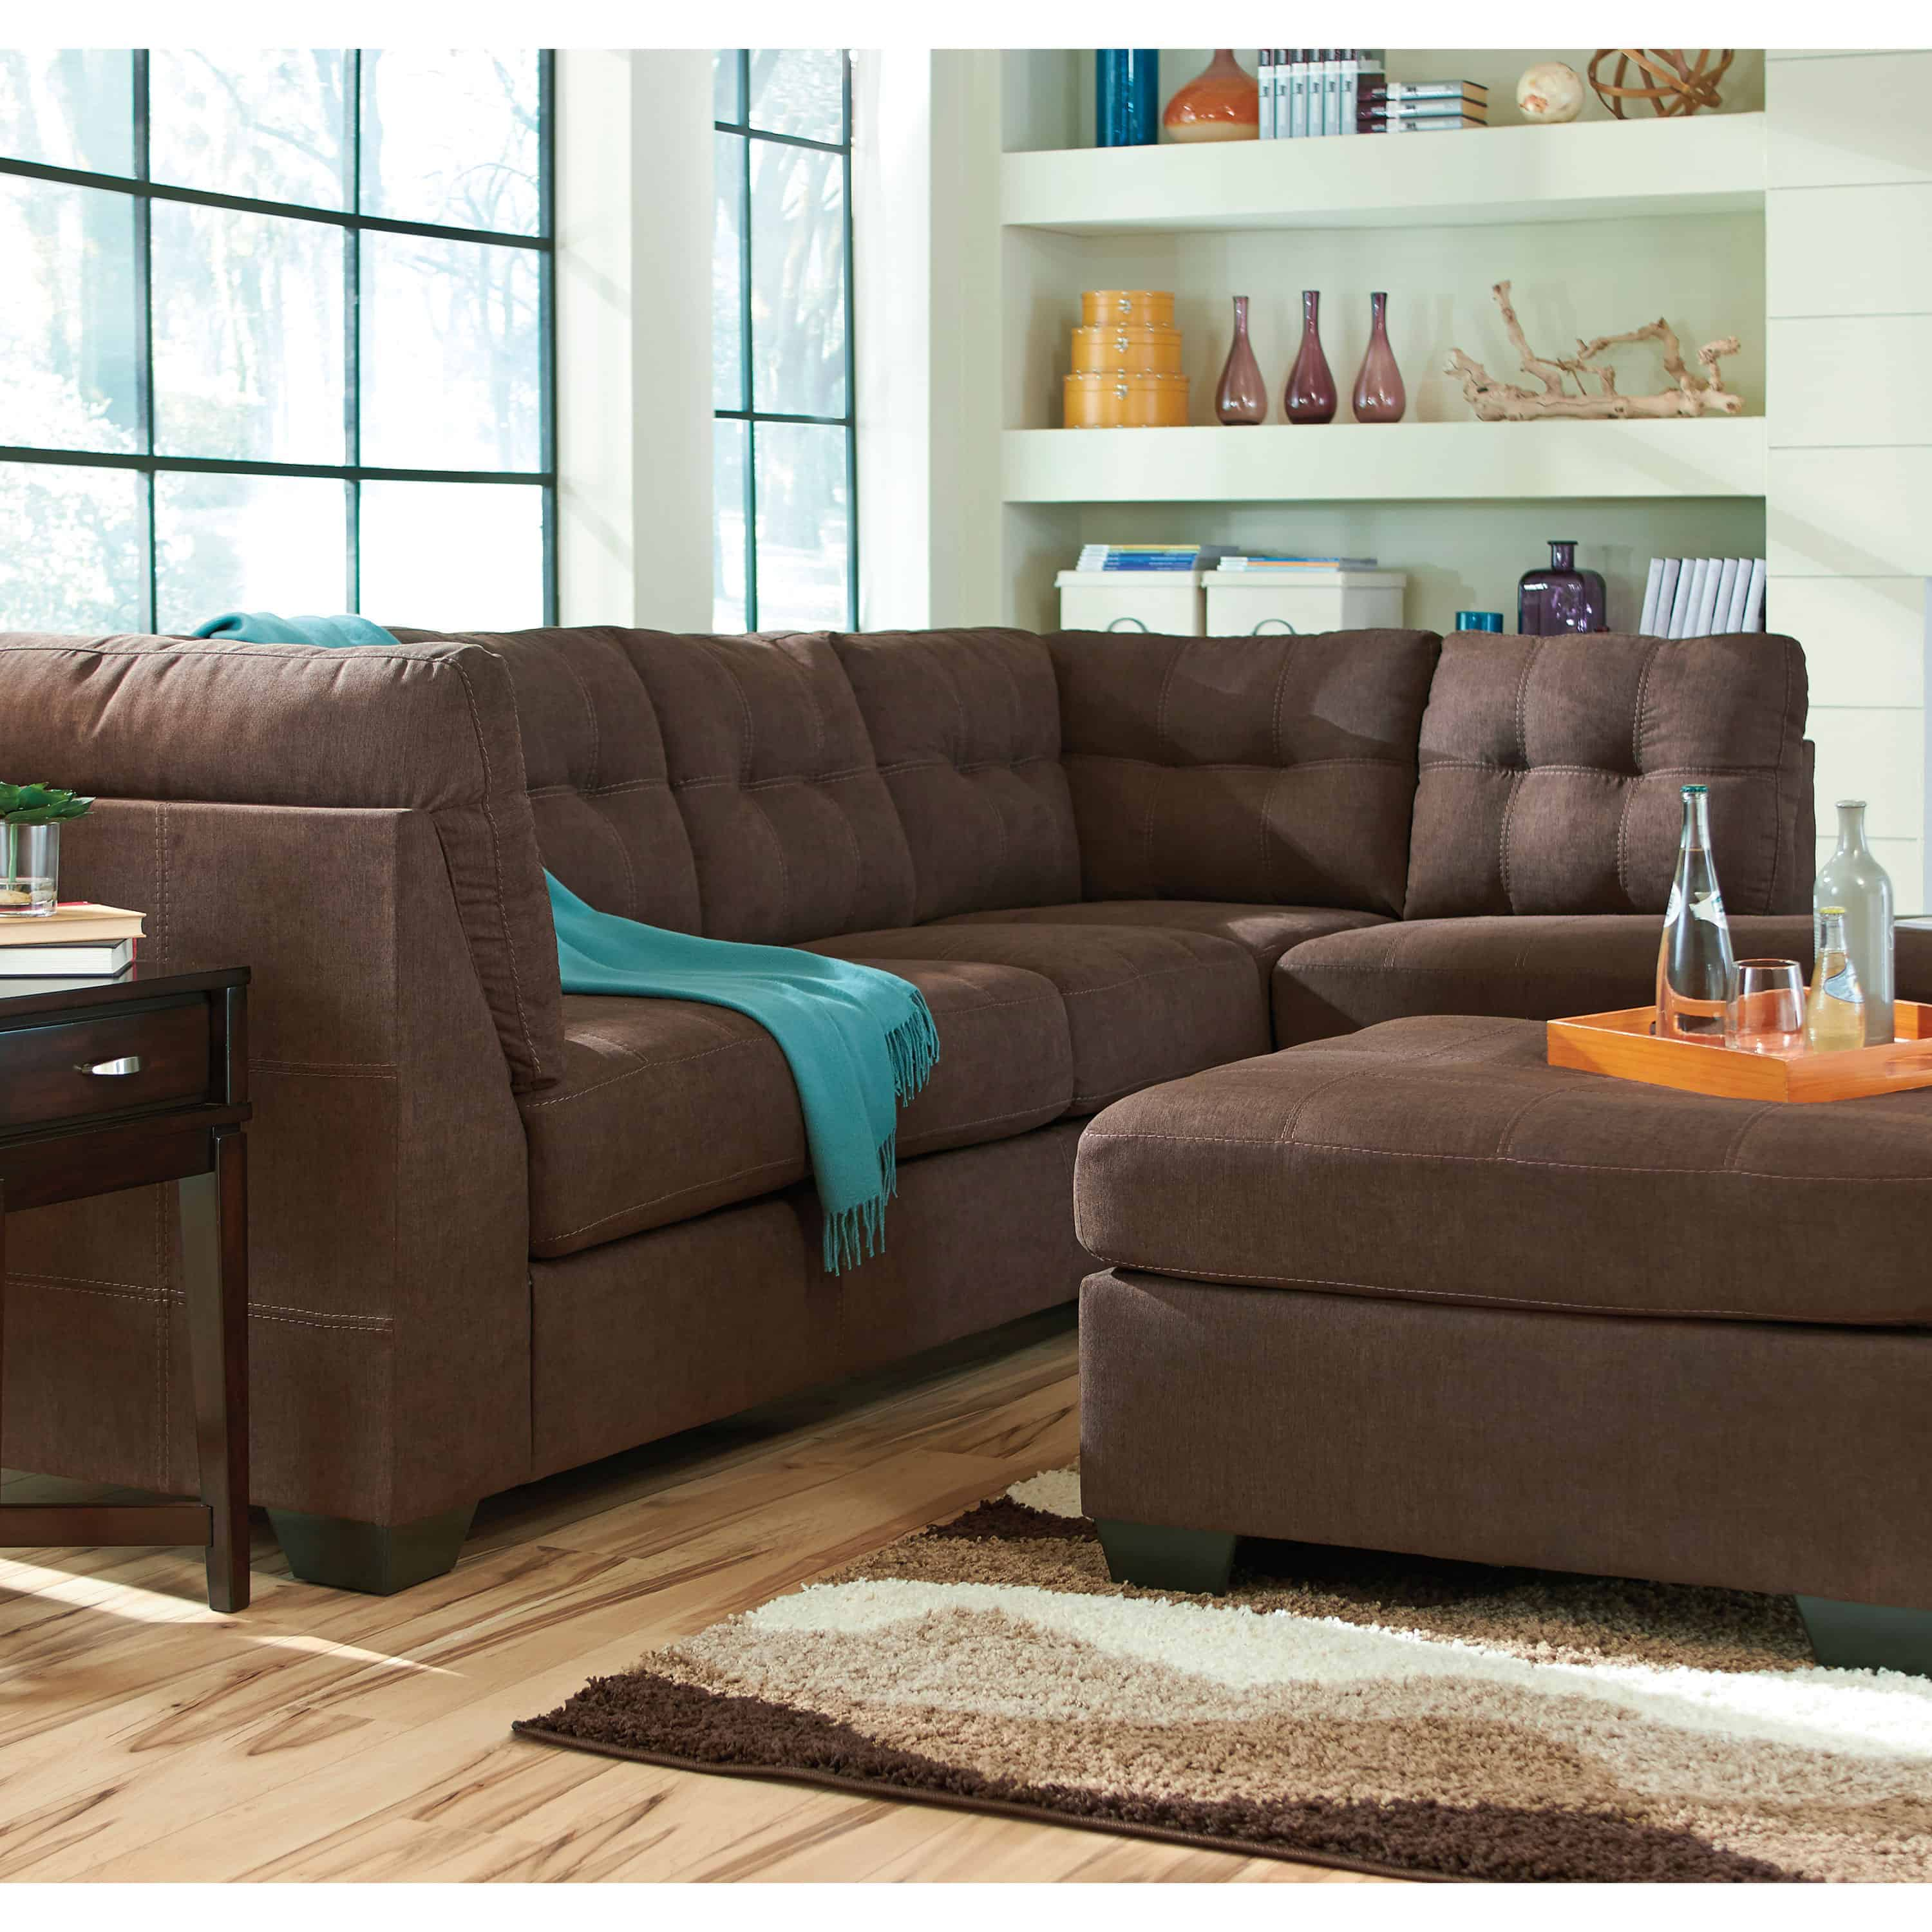 Maier Walnut Raf Chaise Sectional 45201 66 17